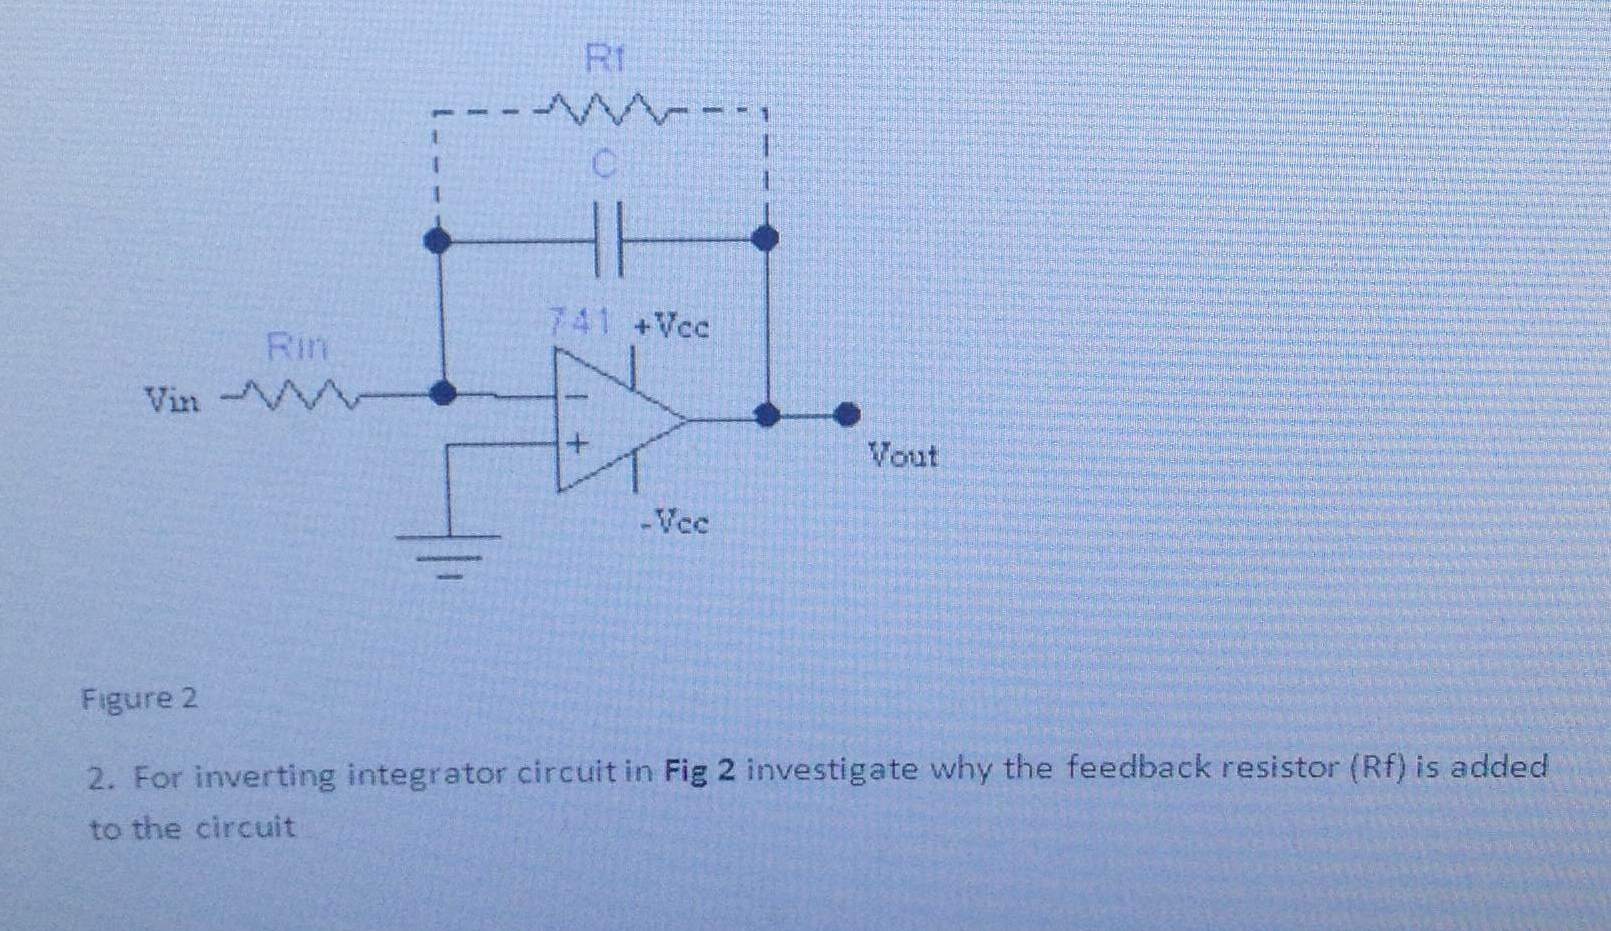 For inverting integrator circuit in investigate wh